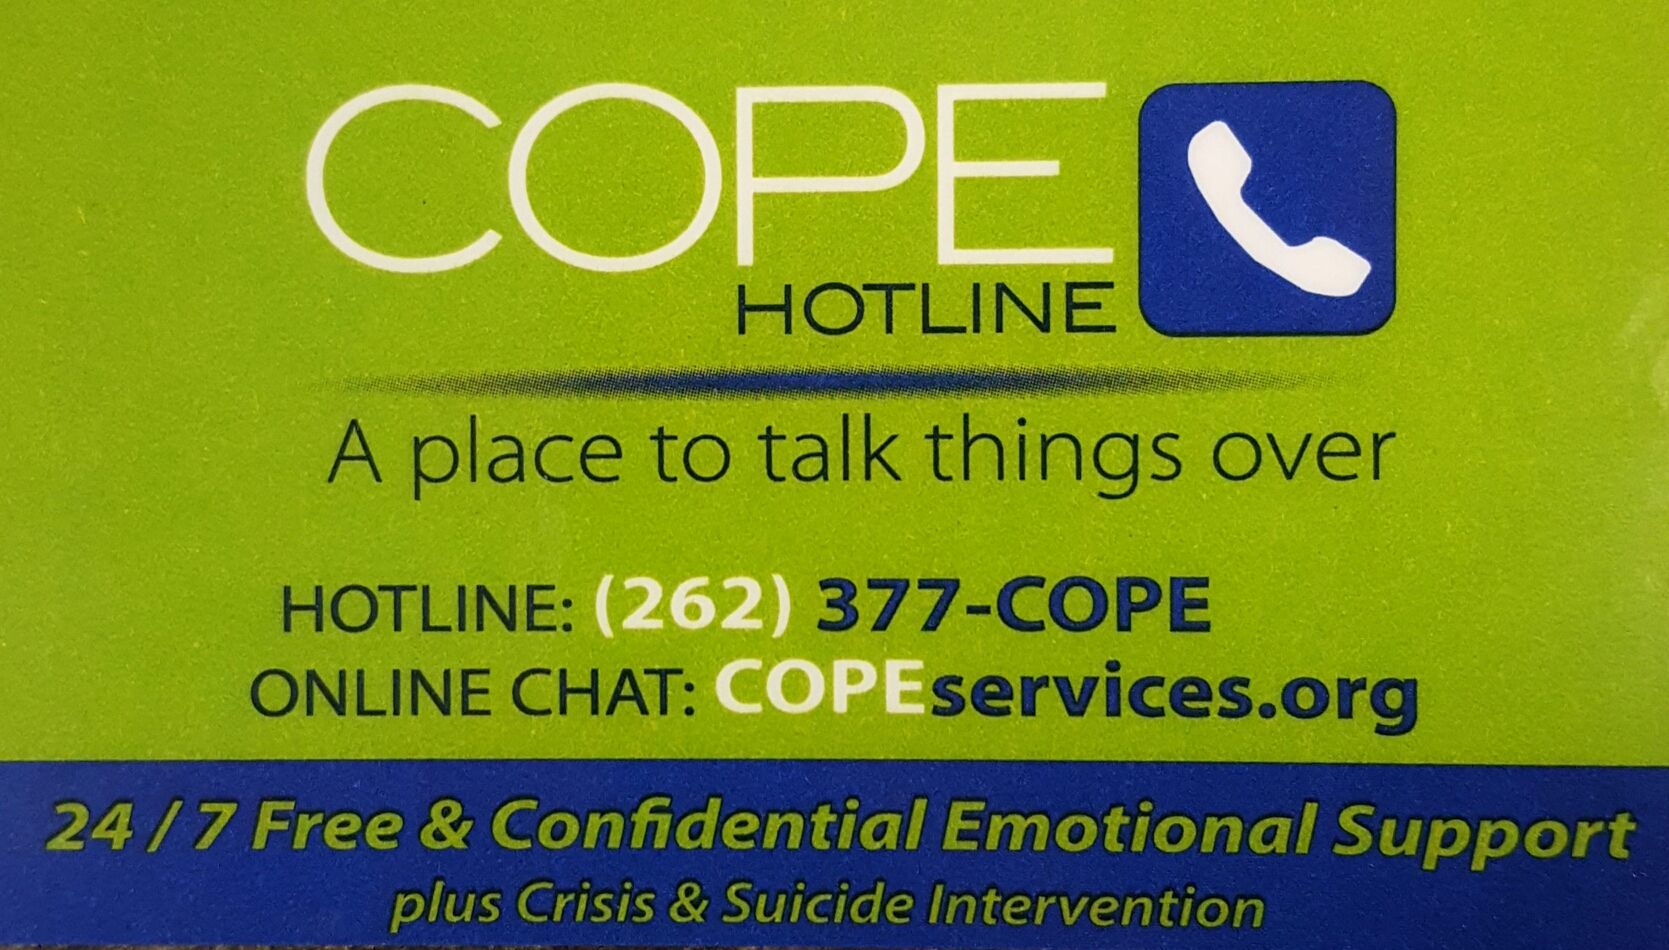 Need someone to JUST LISTEN? Reach the COPE Hotline 24/7.